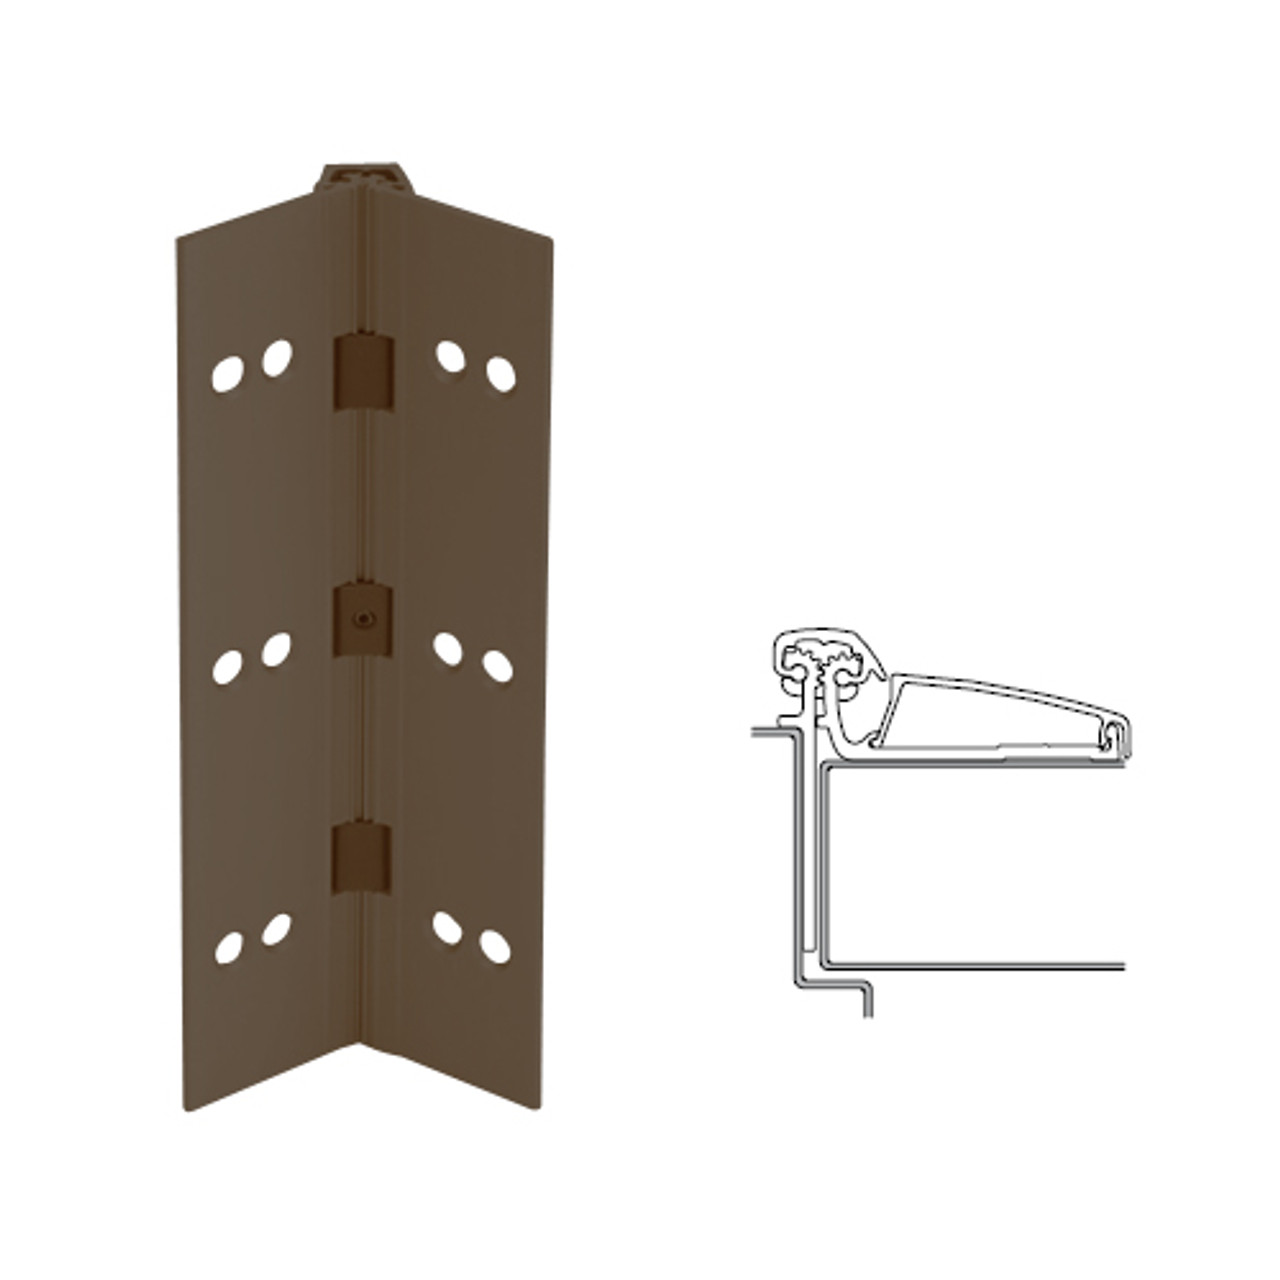 046XY-313AN-83-SECHM IVES Adjustable Half Surface Continuous Geared Hinges with Security Screws - Hex Pin Drive in Dark Bronze Anodized